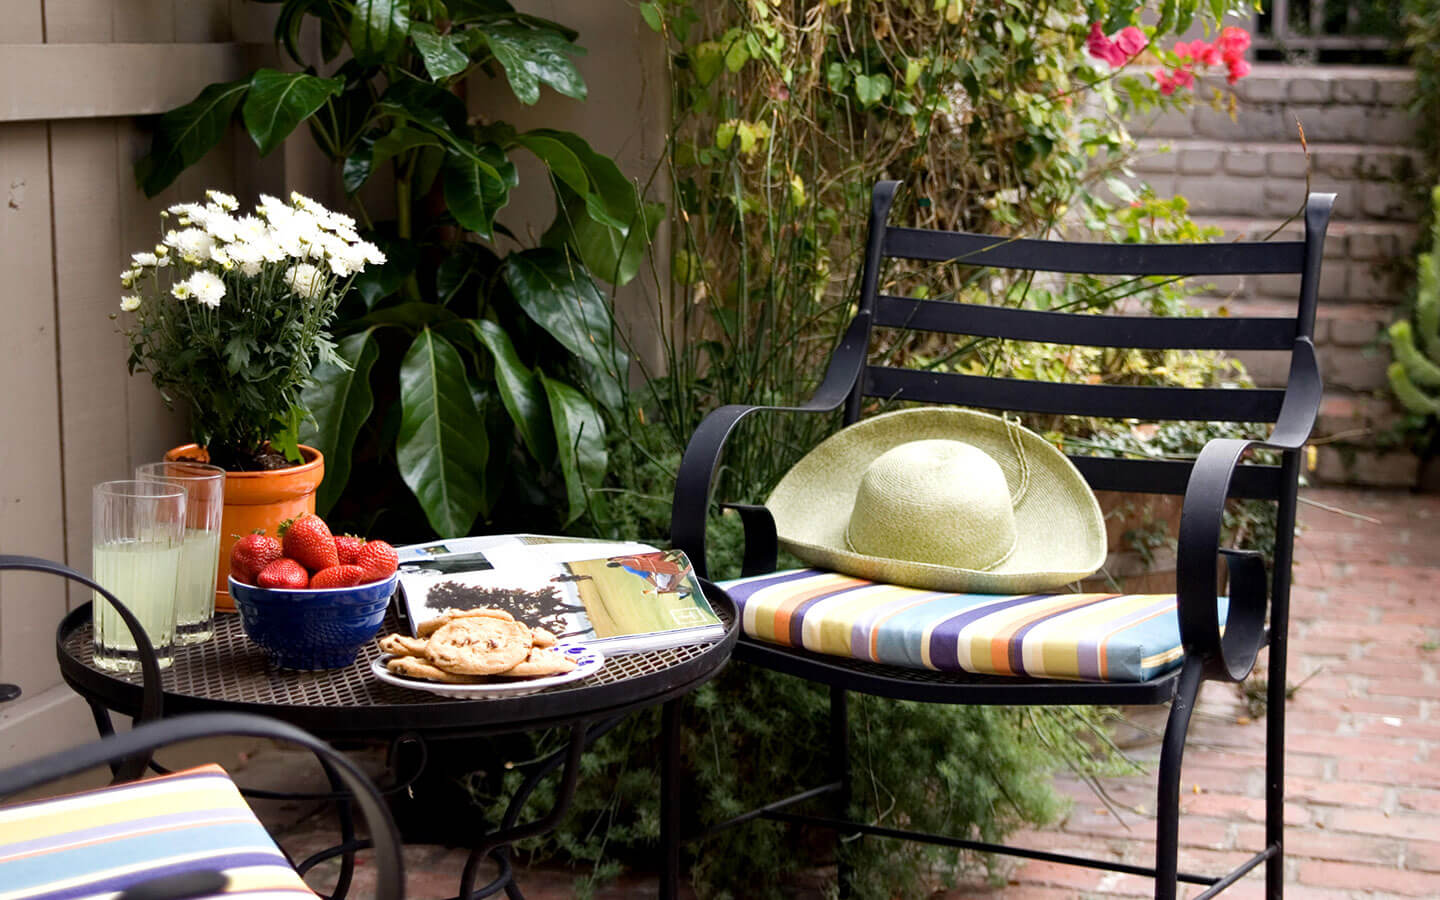 Cookies, fruit, and drinks on a patio table